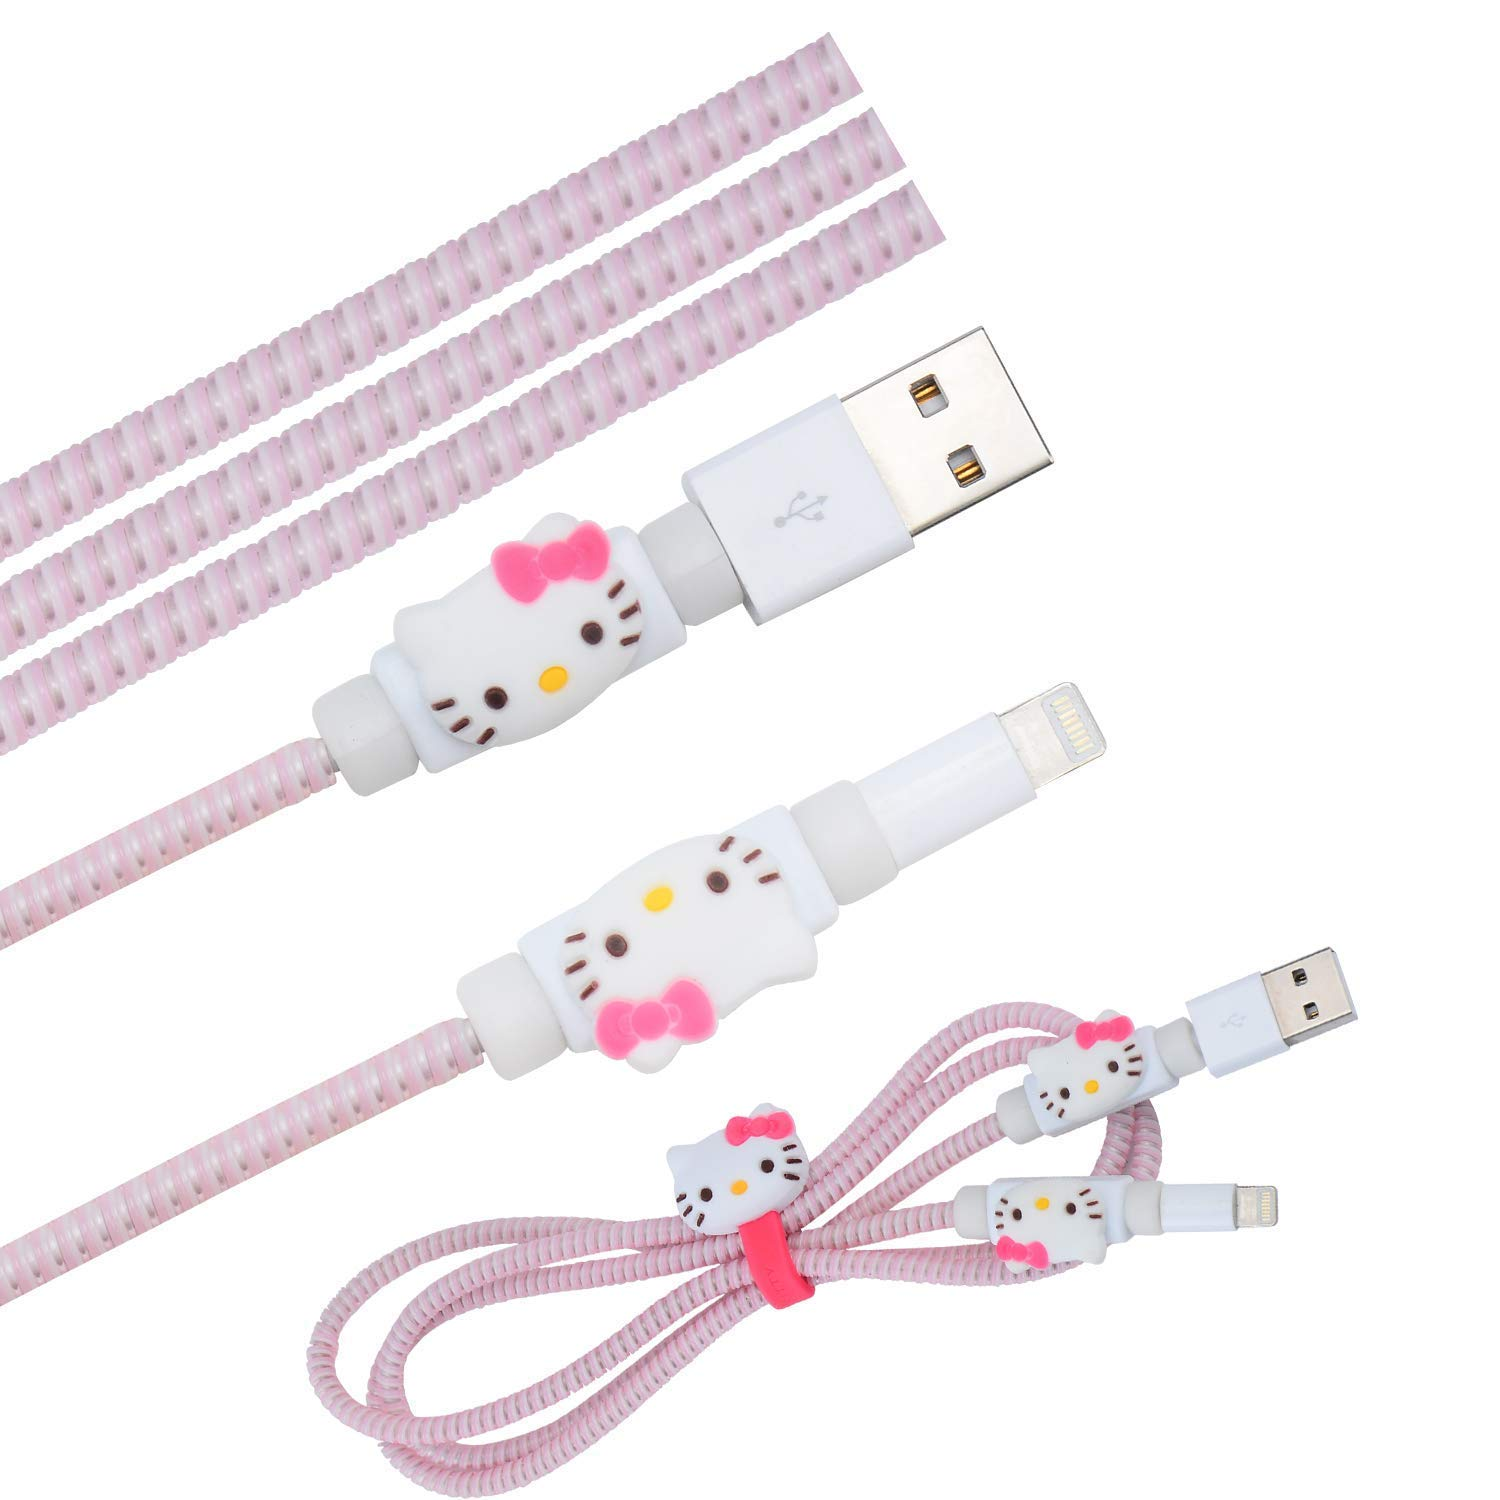 Cute Blue Stitch Cartoon Animal Kawaii Spring Cable Protector Cover Saver Sleeves//Cord Management+Charging Data USB Cable+Cable Ties Reusable Fastening//Cable Straps Organizer for Apple iPhone iPad